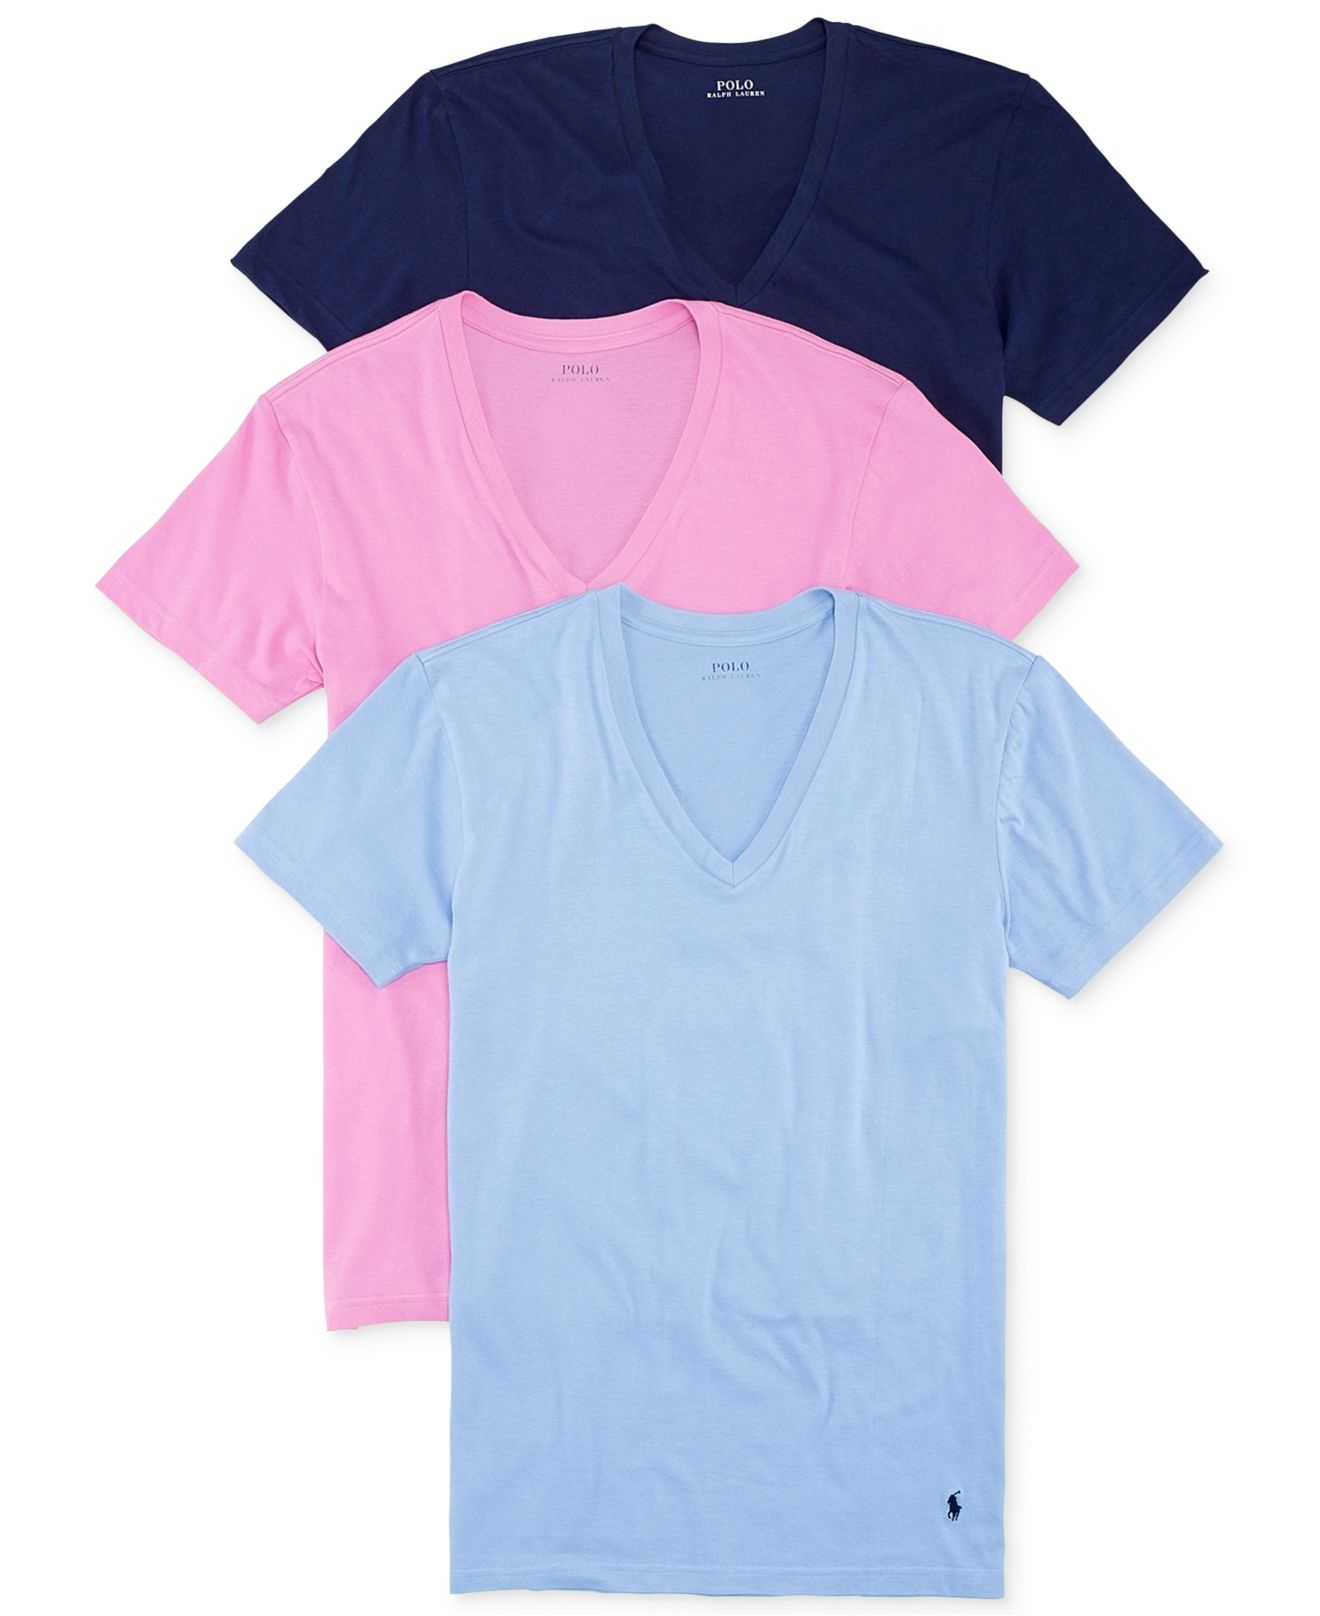 Polo Ralph Lauren V Neck T Shirt 3 Pack For Men Lyst